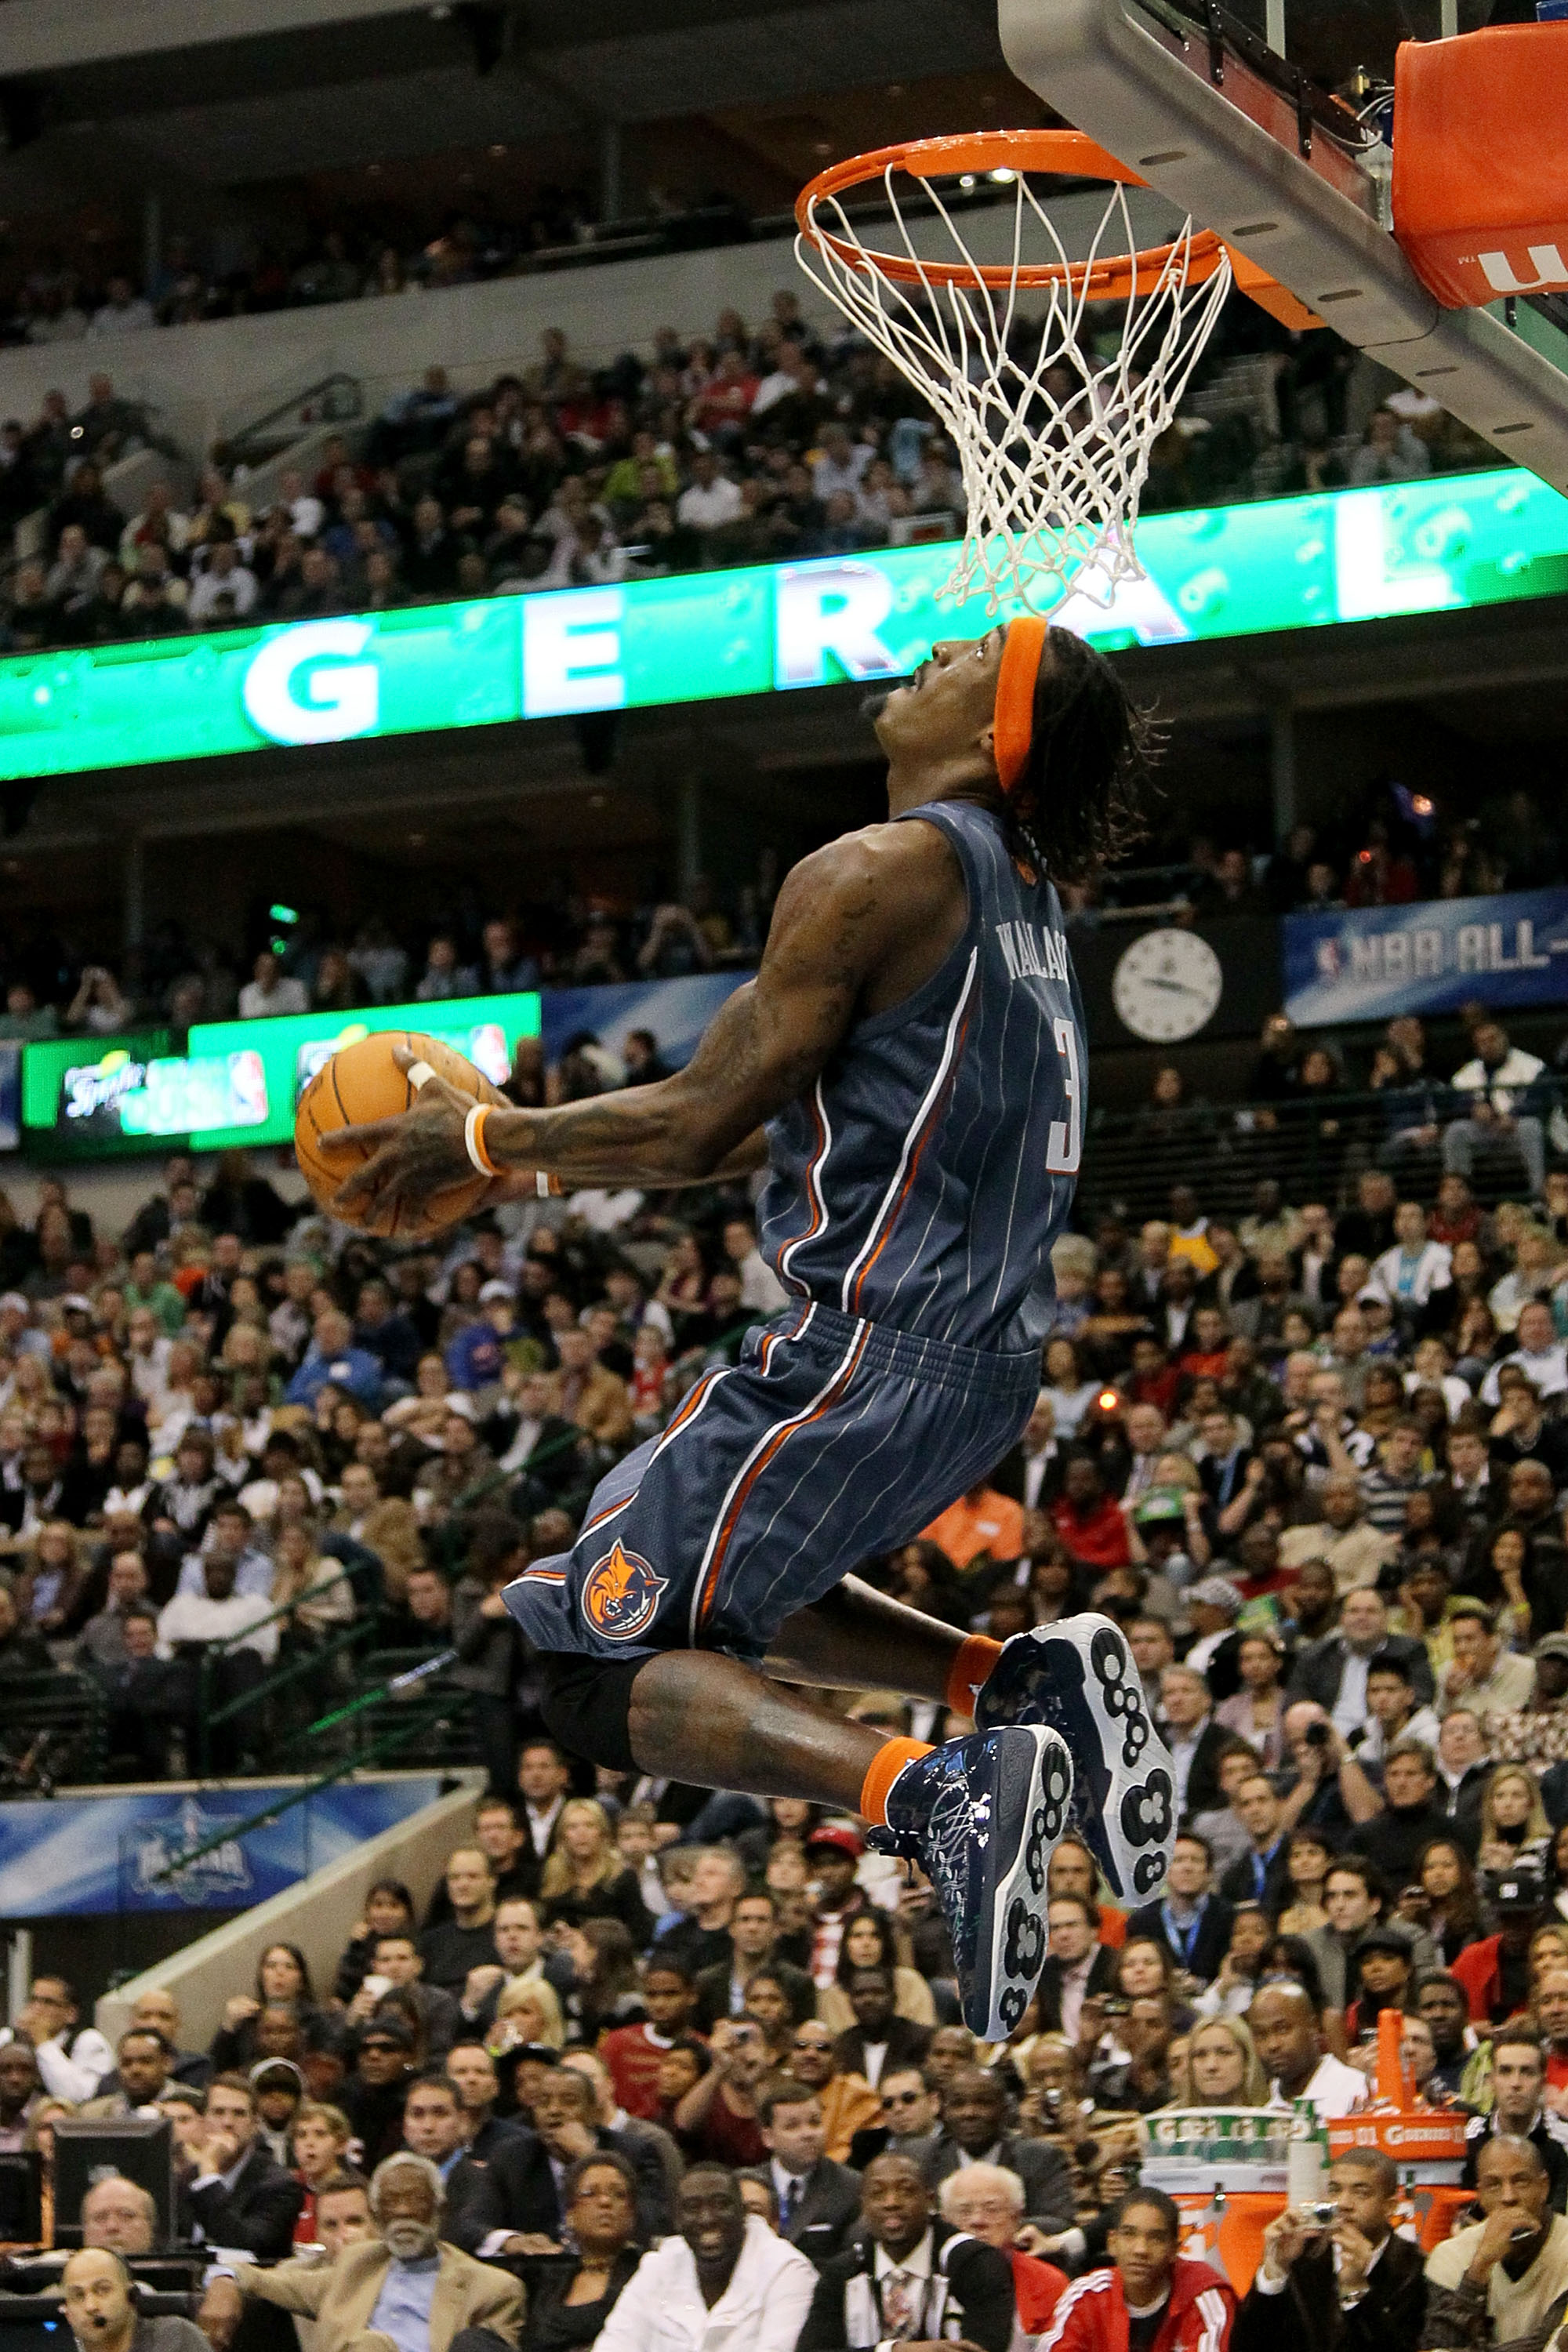 DALLAS - FEBRUARY 13:  Gerald Wallace #3 of the Charlotte Bobcats attempts a dunk during the Sprite Slam Dunk Contest on All-Star Saturday Night, part of 2010 NBA All-Star Weekend at American Airlines Center on February 13, 2010 in Dallas, Texas. NOTE TO